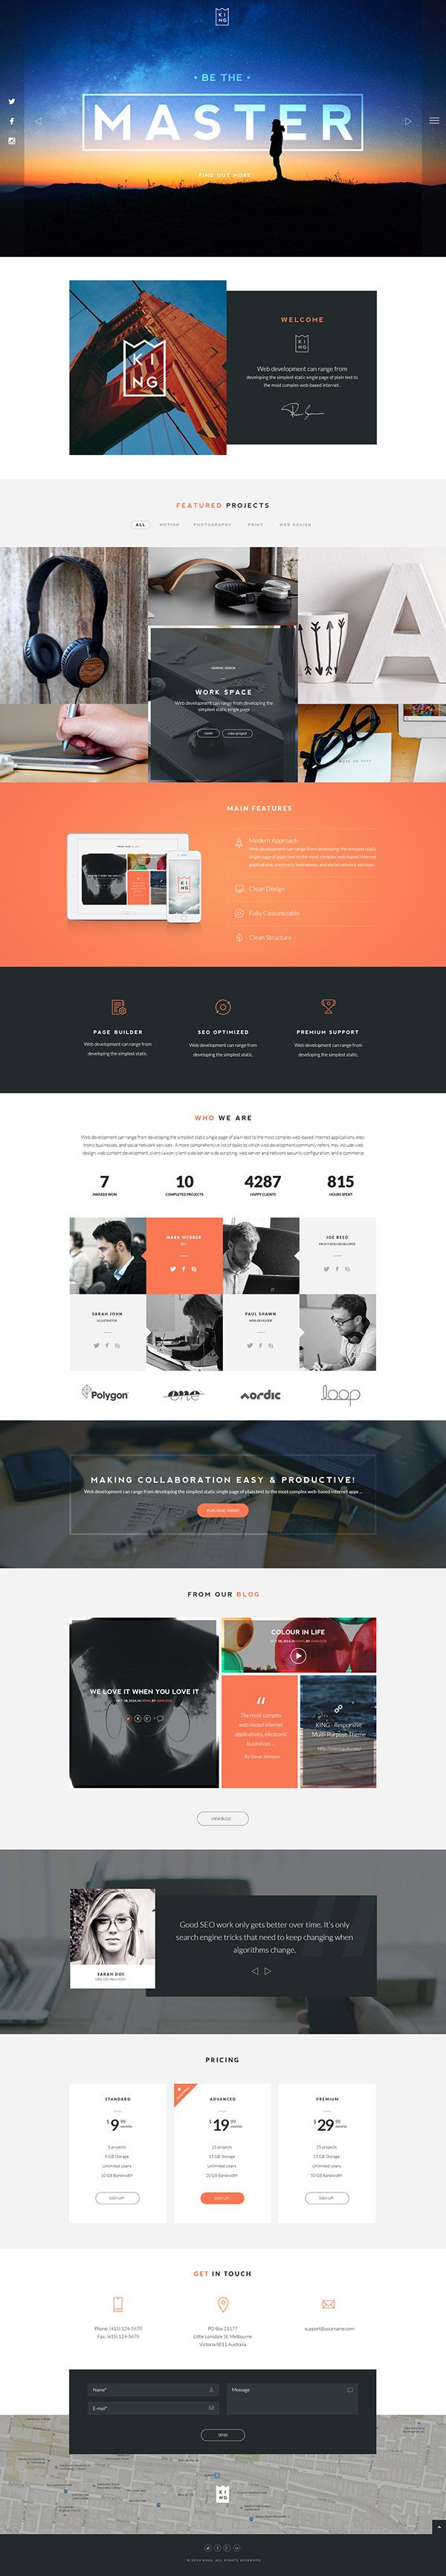 KING - One Page PSD Template (Redesign) on Behance